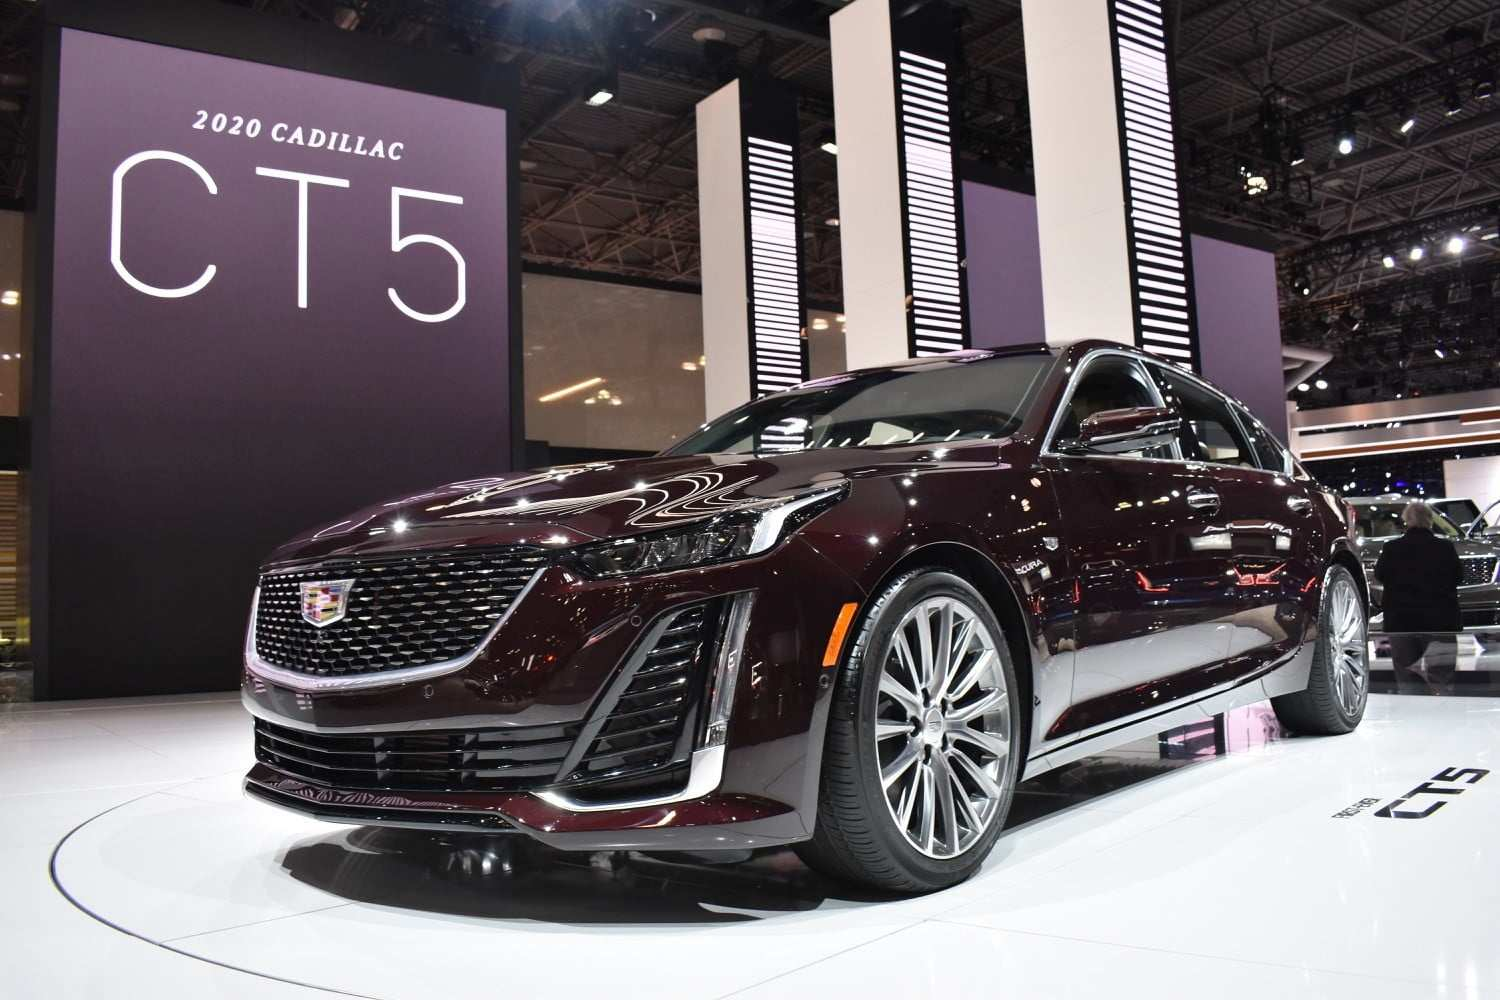 35 New New Cadillac Models For 2020 Research New